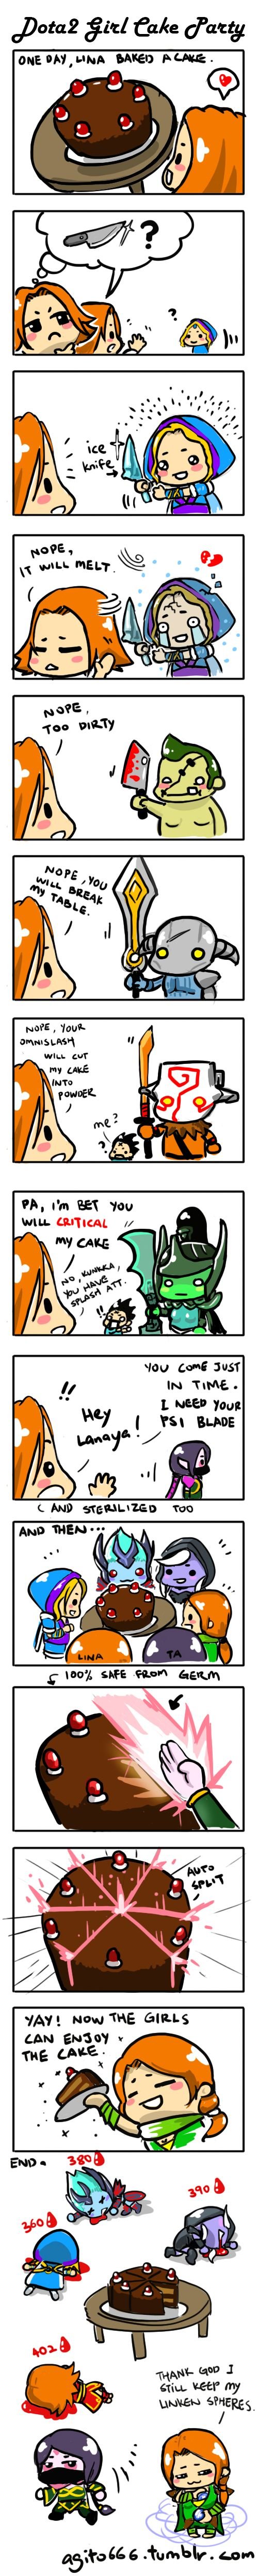 0456: Getting a knife for cutting cake by Agito666 on DeviantArt